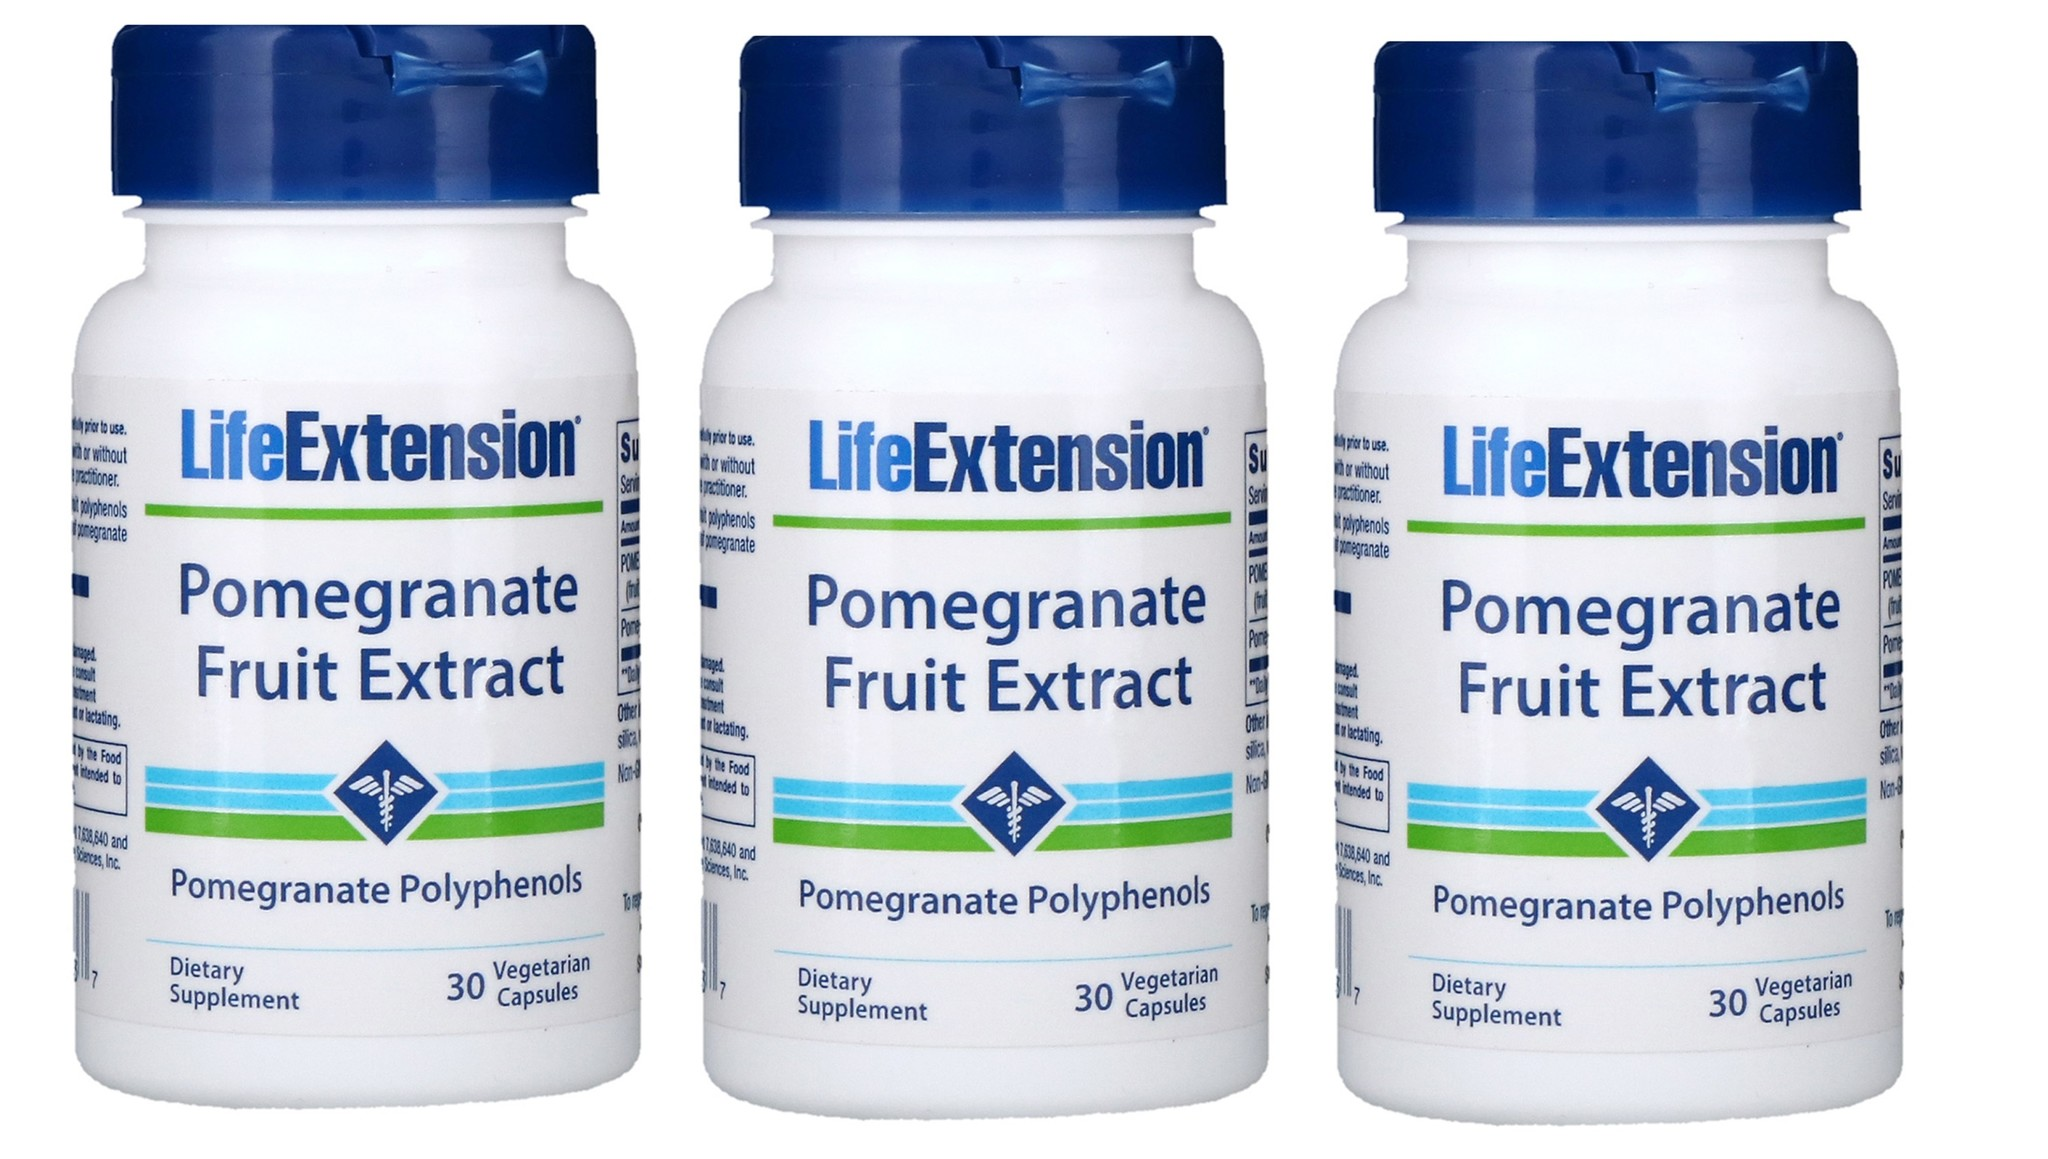 Life Extension Pomegranate Fruit Extract, 30 Vegetarian Capsules, 3-packs